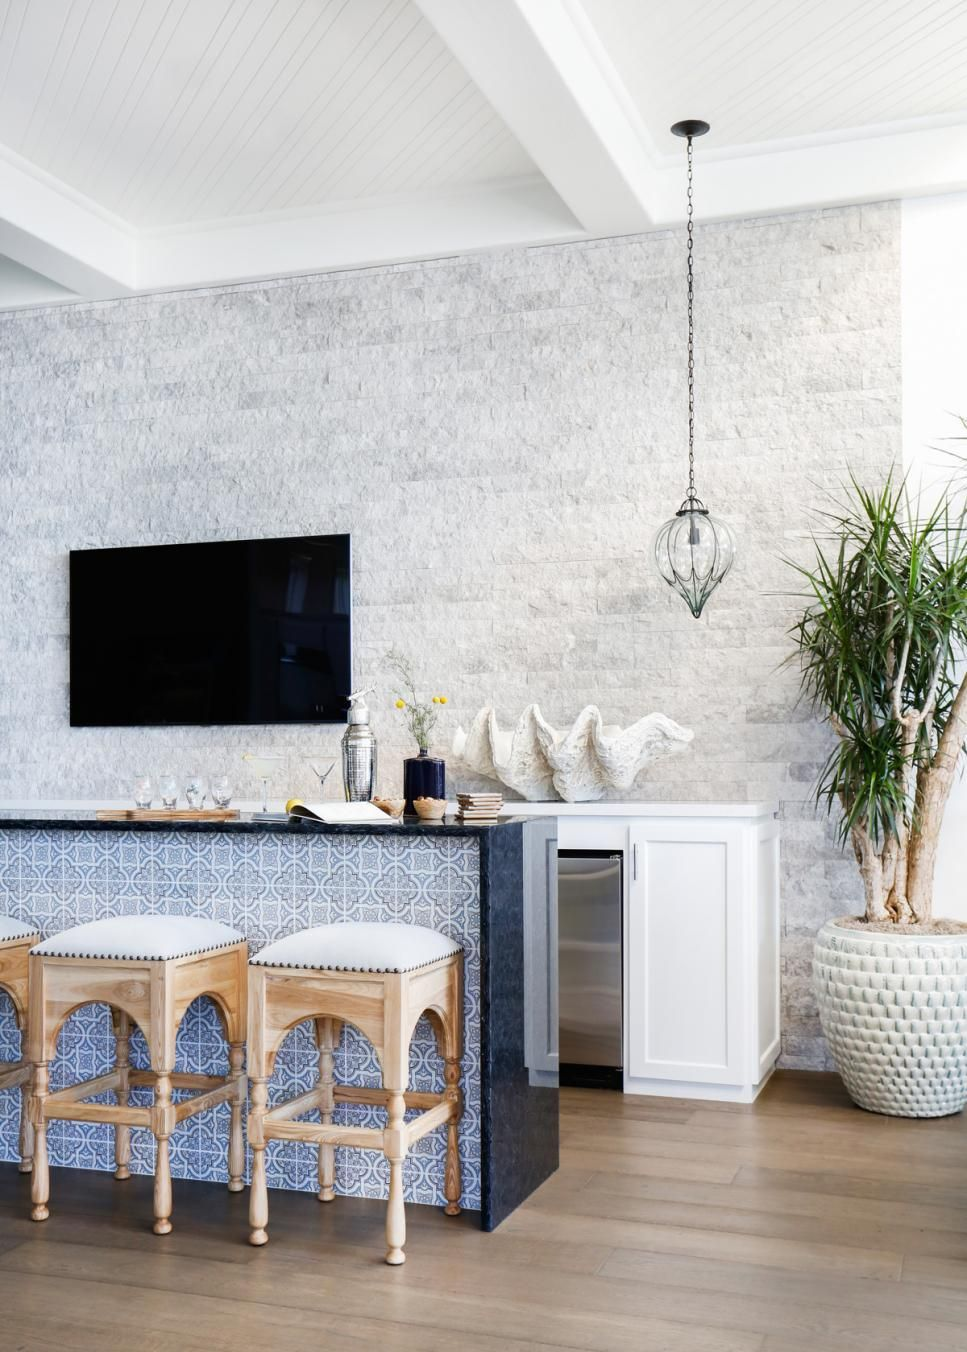 Modern Mediterranean Bar With Stone Accent Wall | Unique Countertops ...